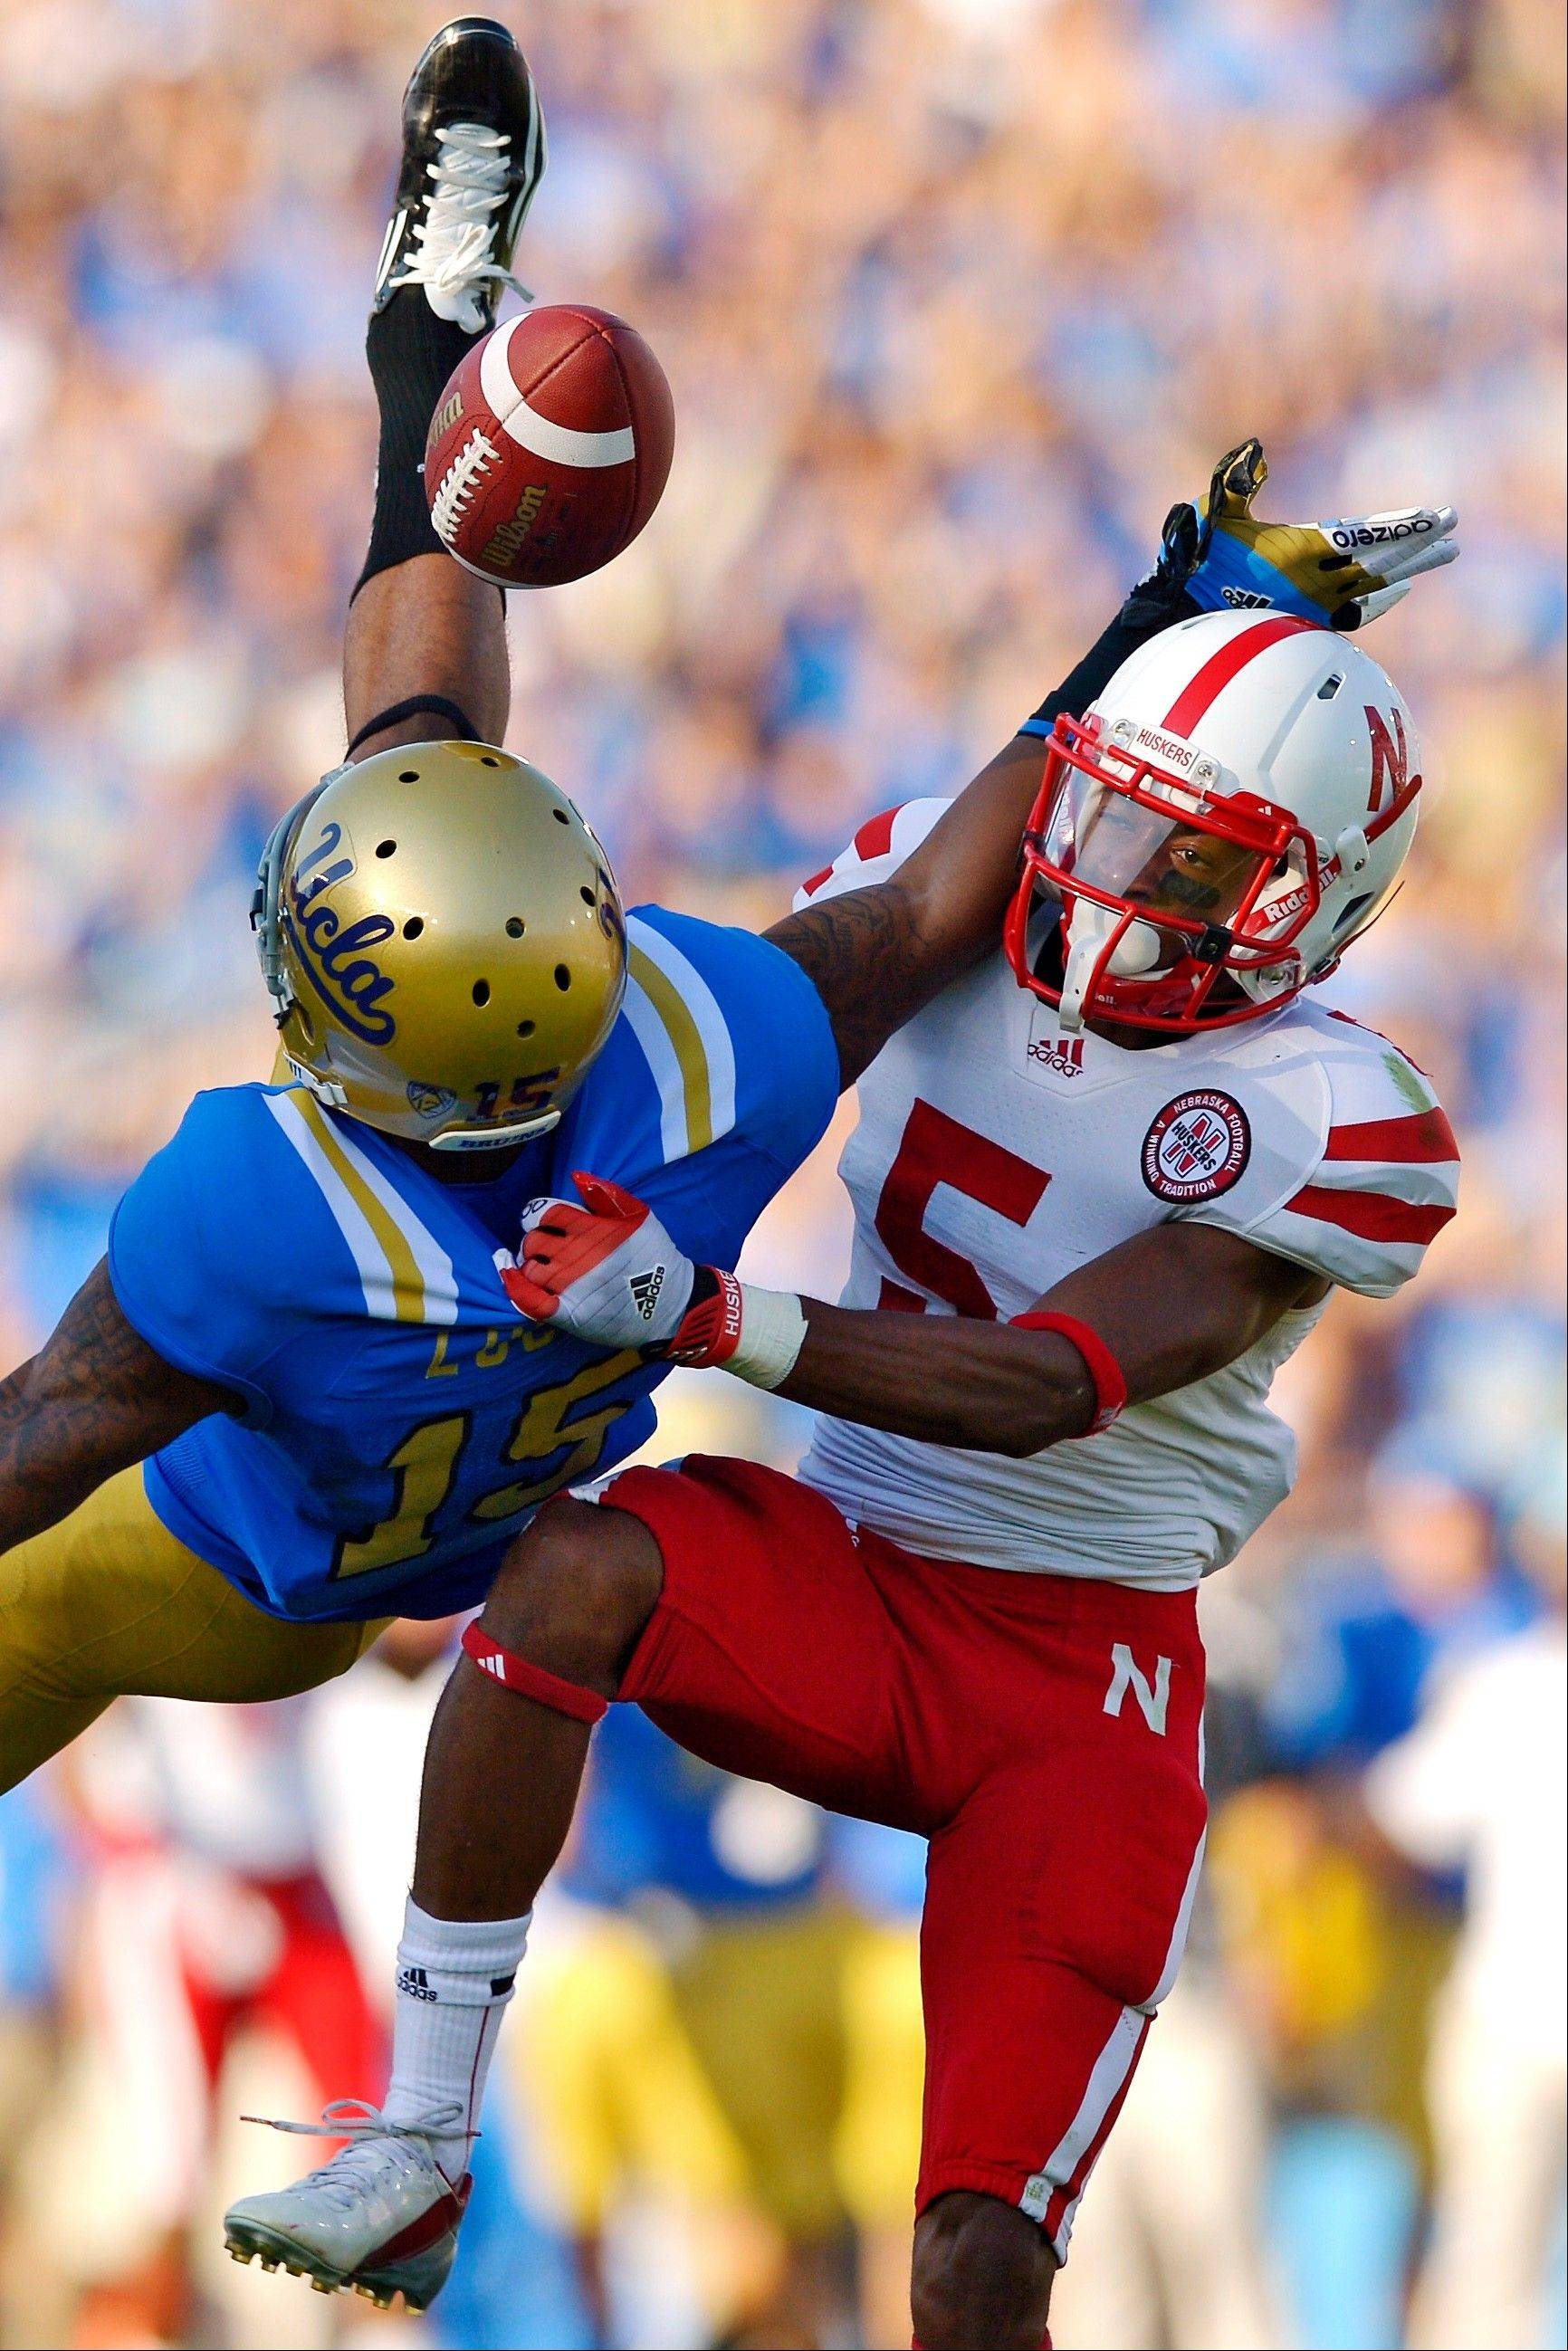 Nebraska cornerback Braylon Heard, right, breaks up a pass intended for UCLA wide receiver Devin Lucien during the first half Saturday in Pasadena, Calif.